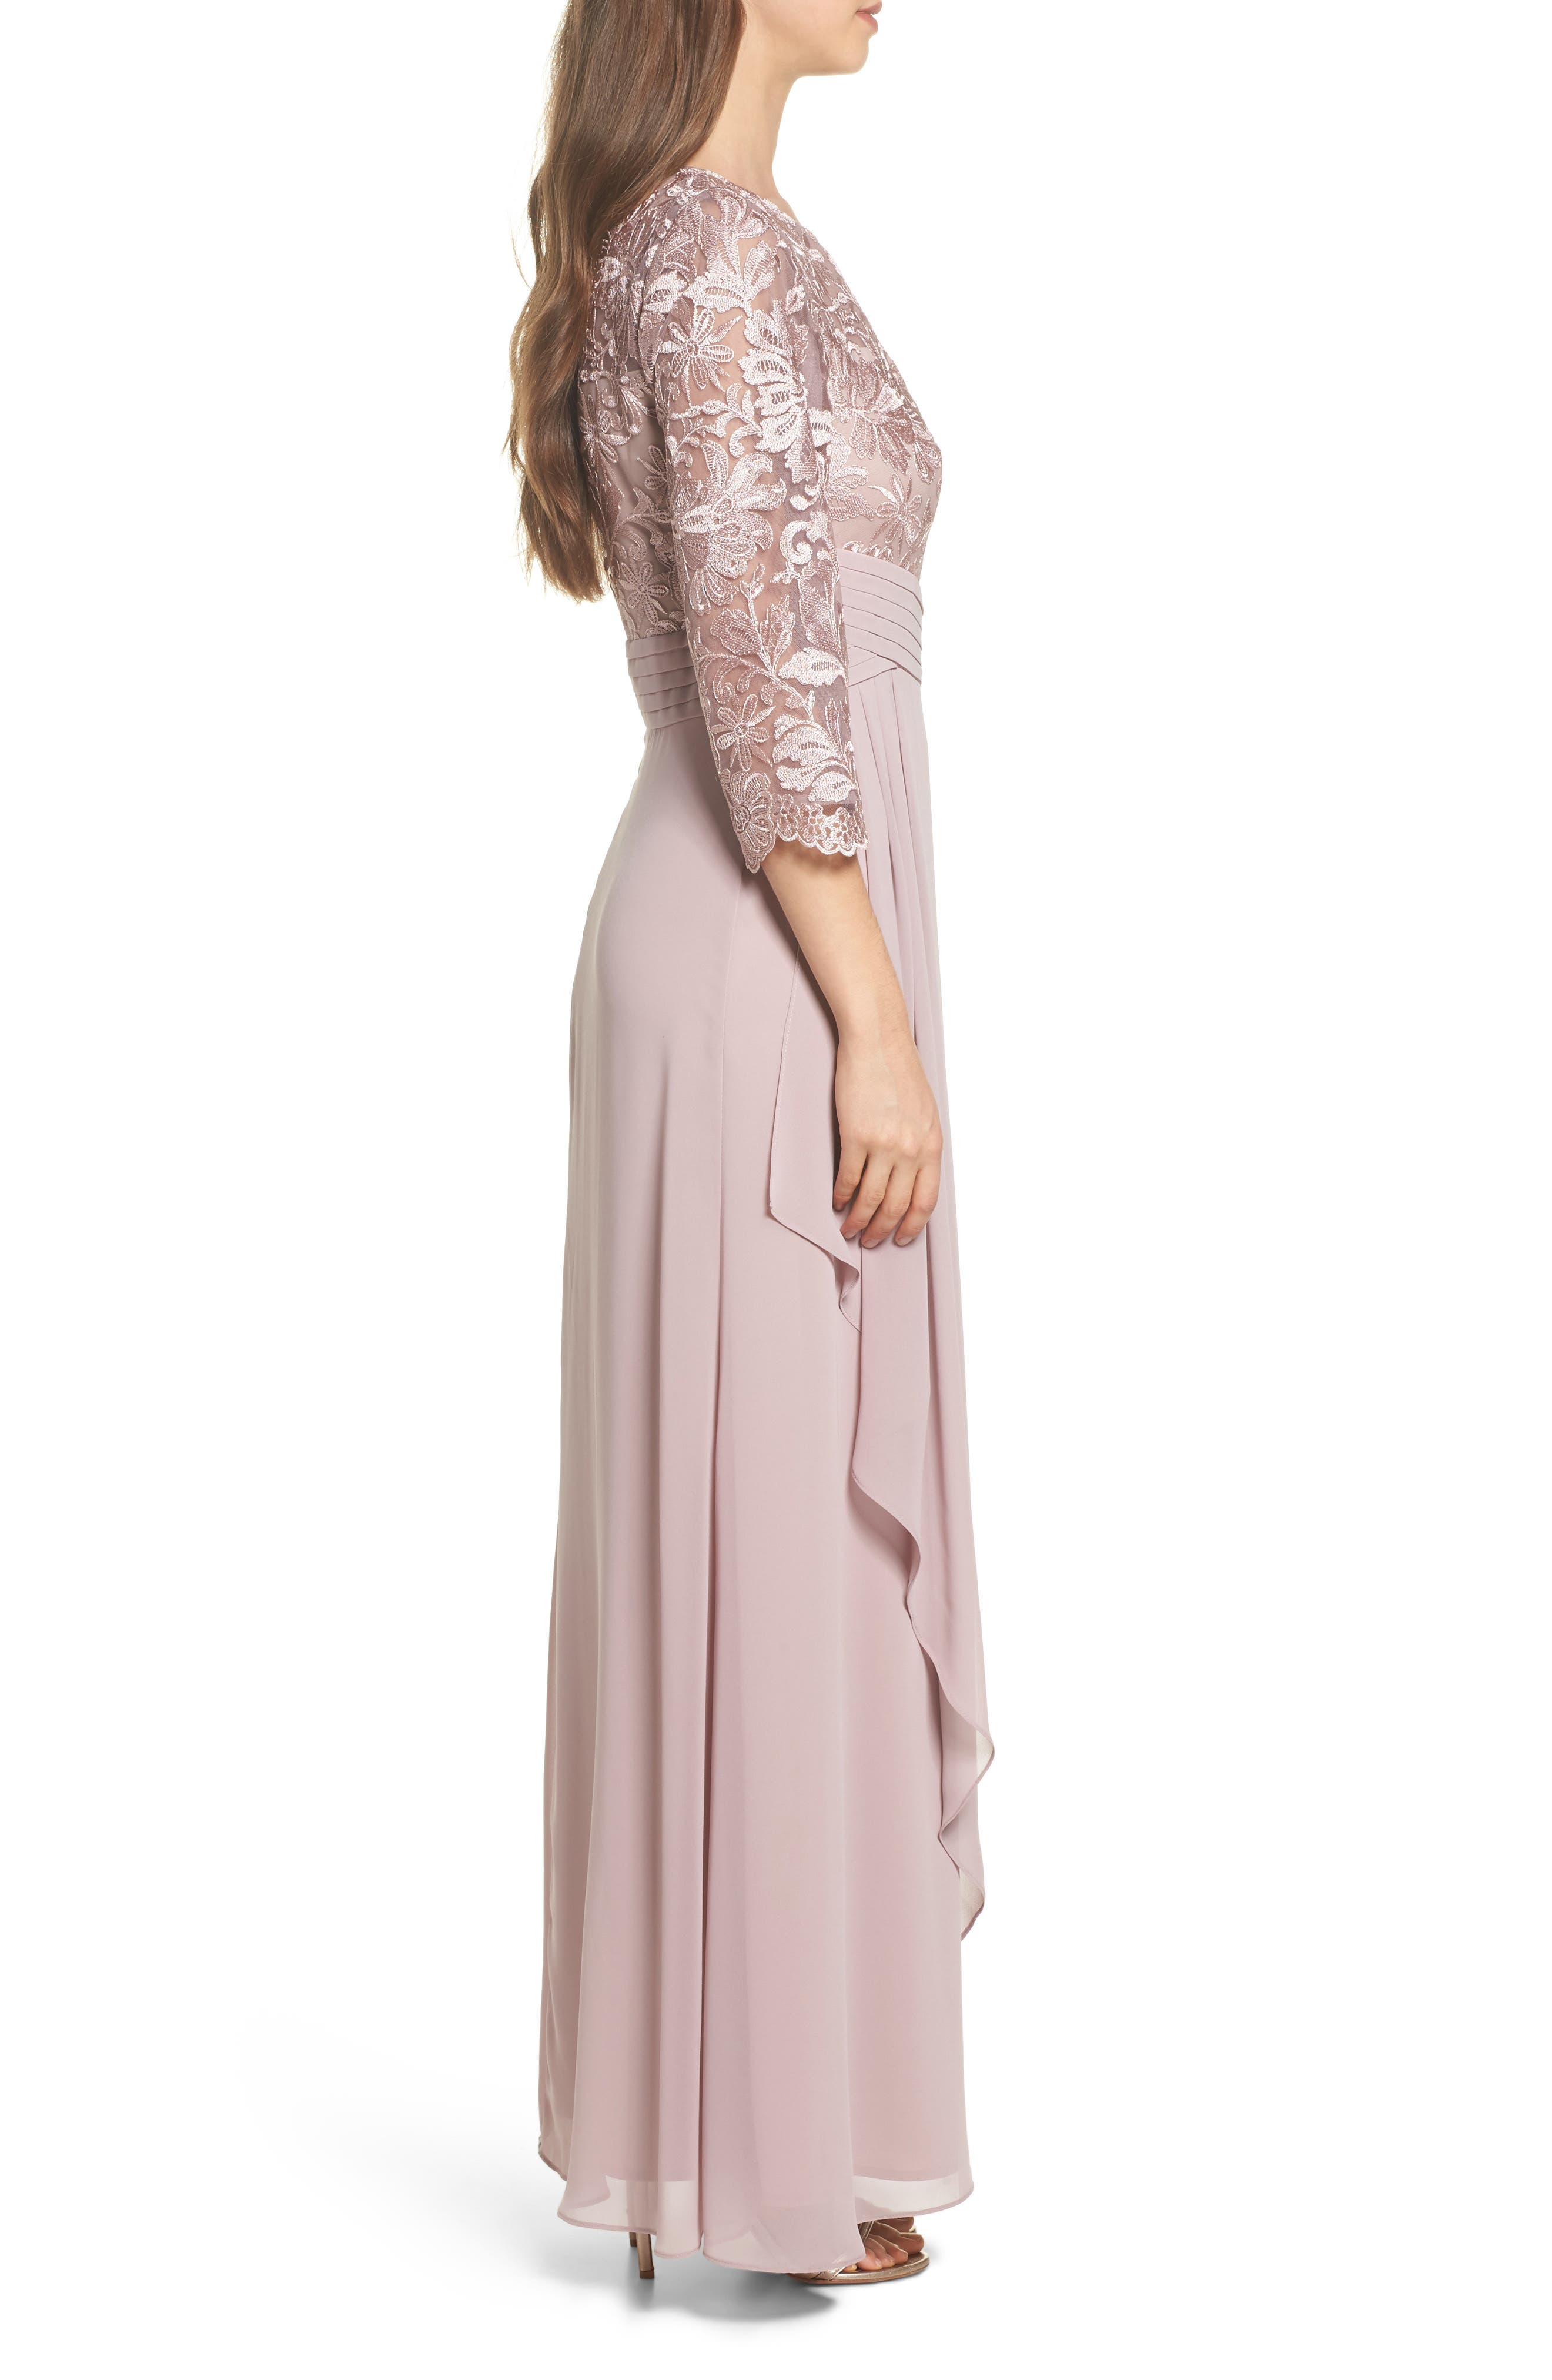 ALEX EVENINGS, Embroidered A-Line Gown, Alternate thumbnail 3, color, 695